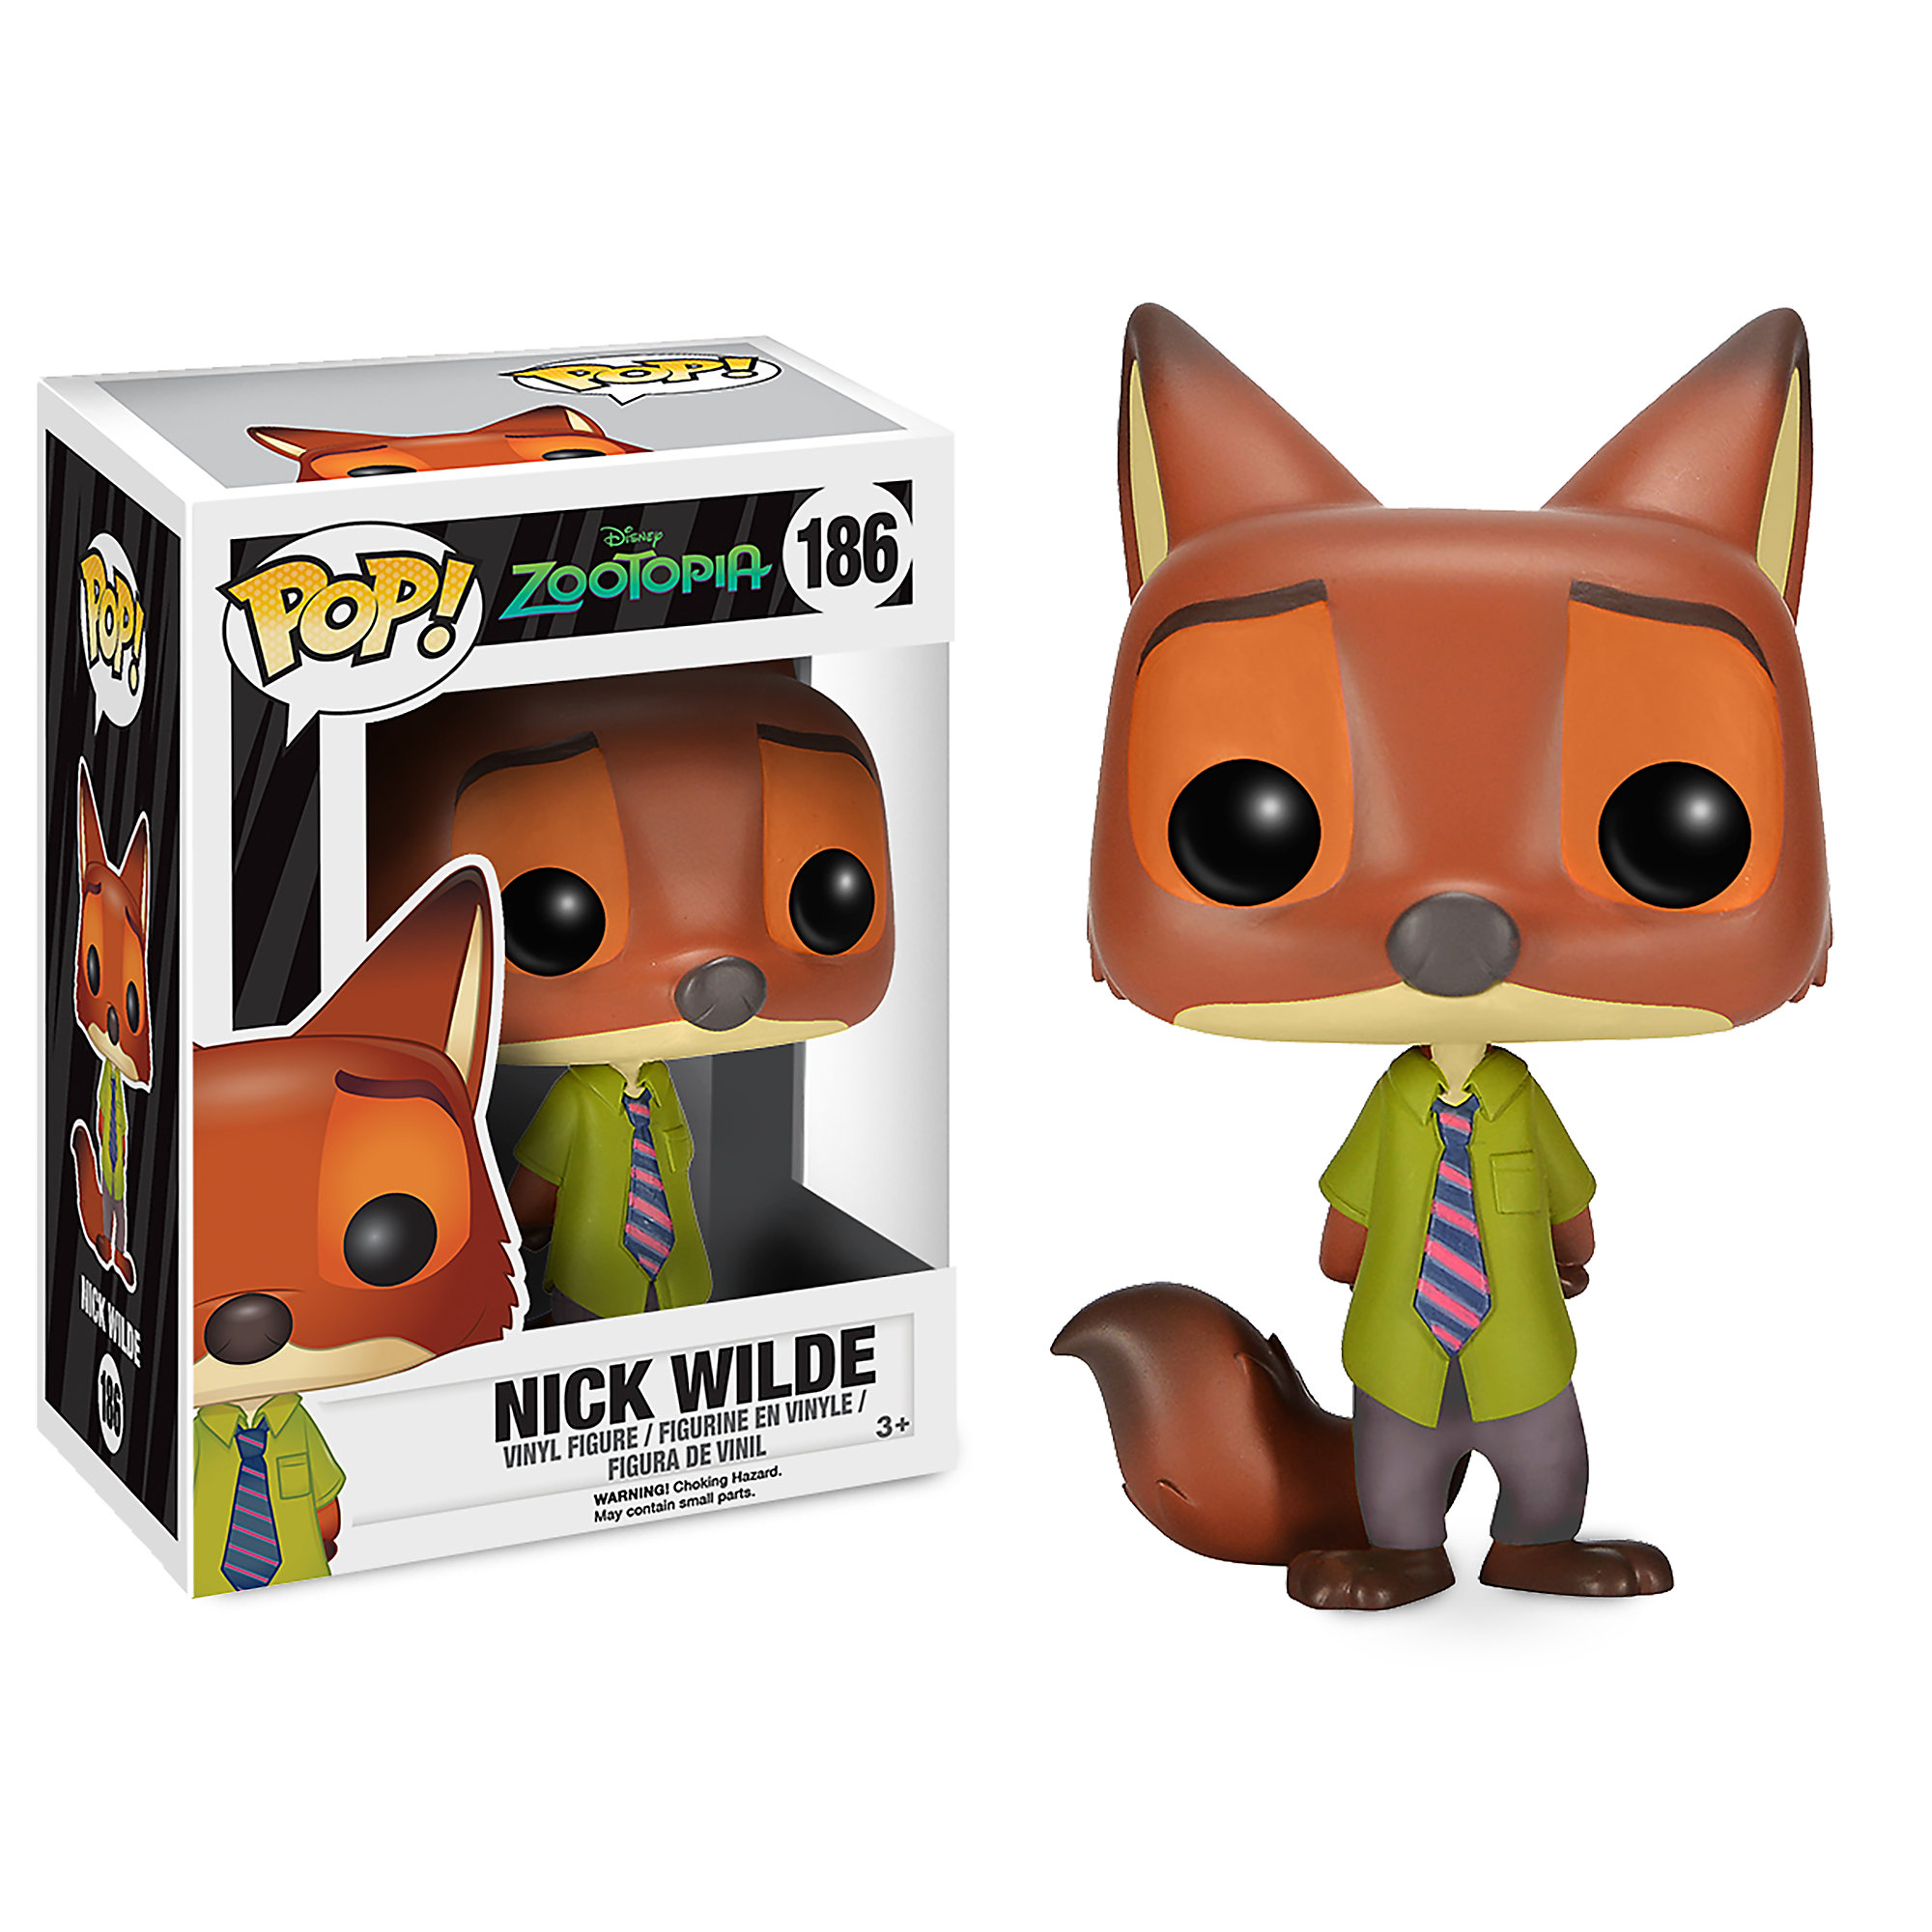 Nick Wilde Pop! Vinyl Figure by Funko